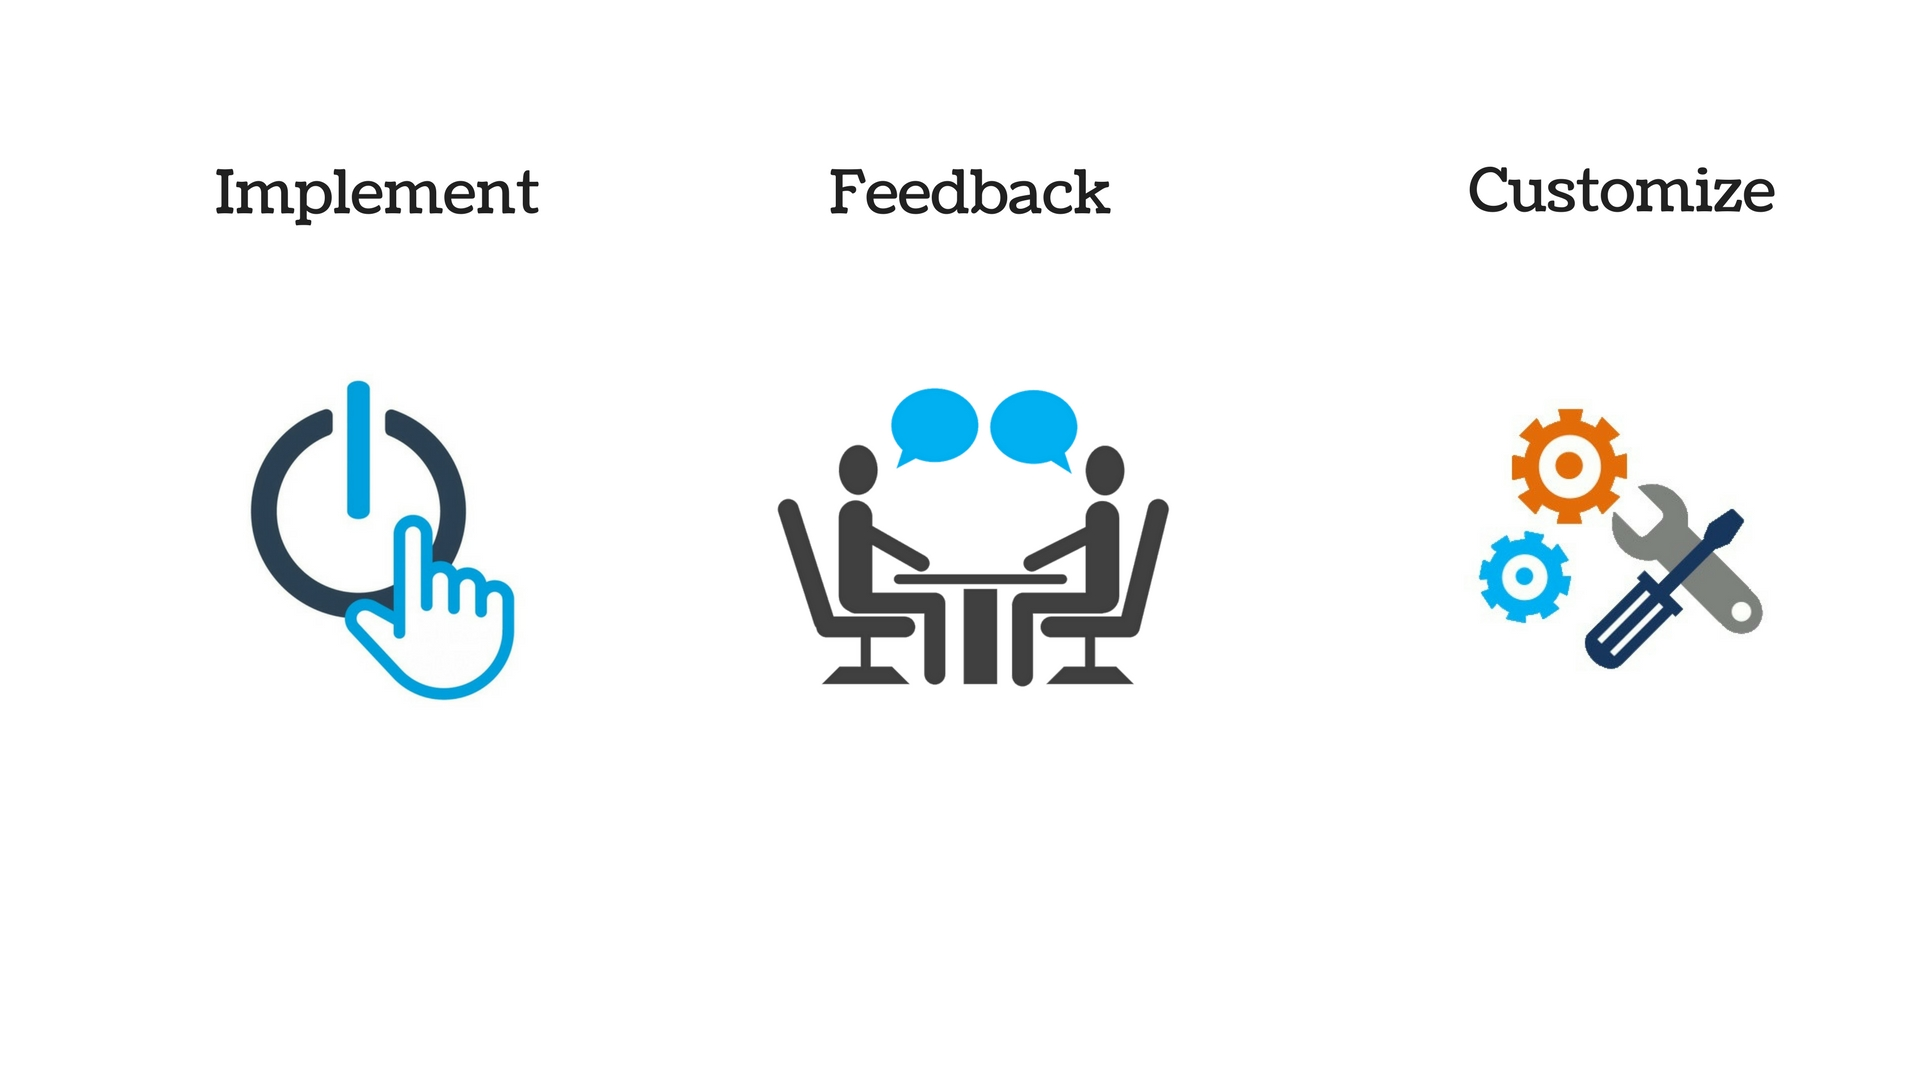 How CRM is implemented the best way?